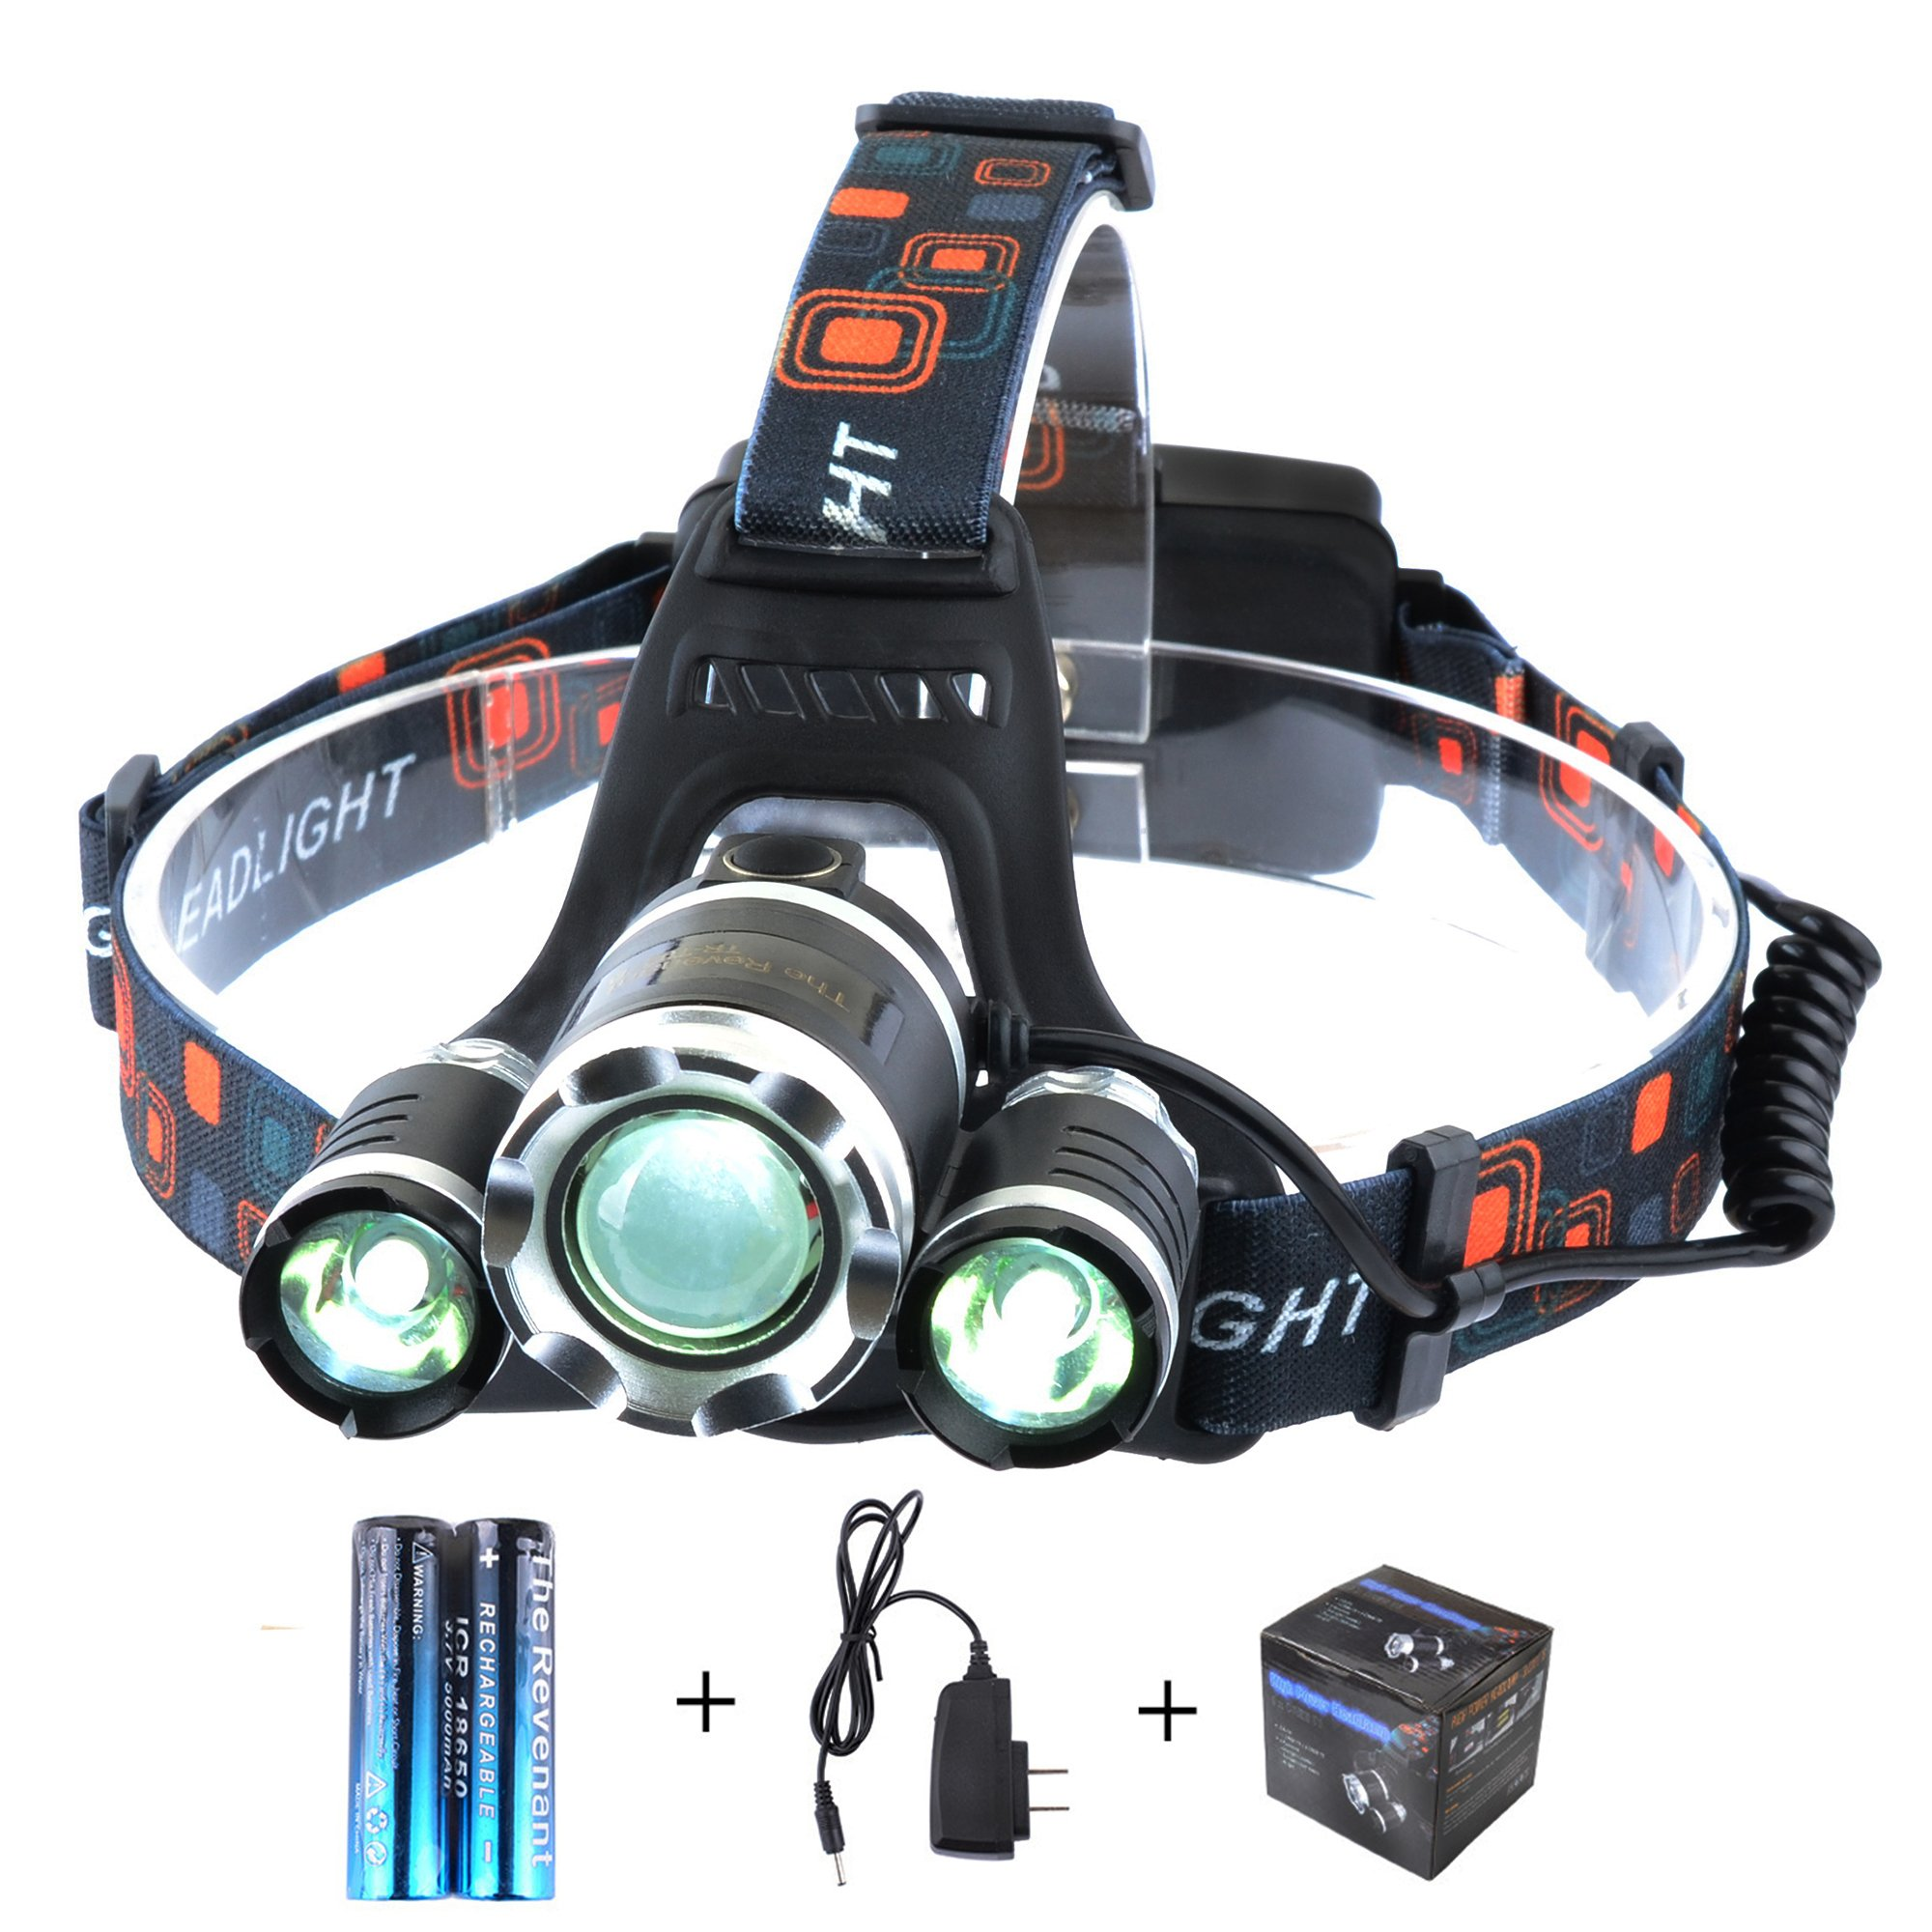 The Revenant Super Bright LED Headlamp Headlight 5000 Lumens 4 Modes 3 CREE XM-L T6 Zooomable Waterproof, Rechargeable Battery & Charger